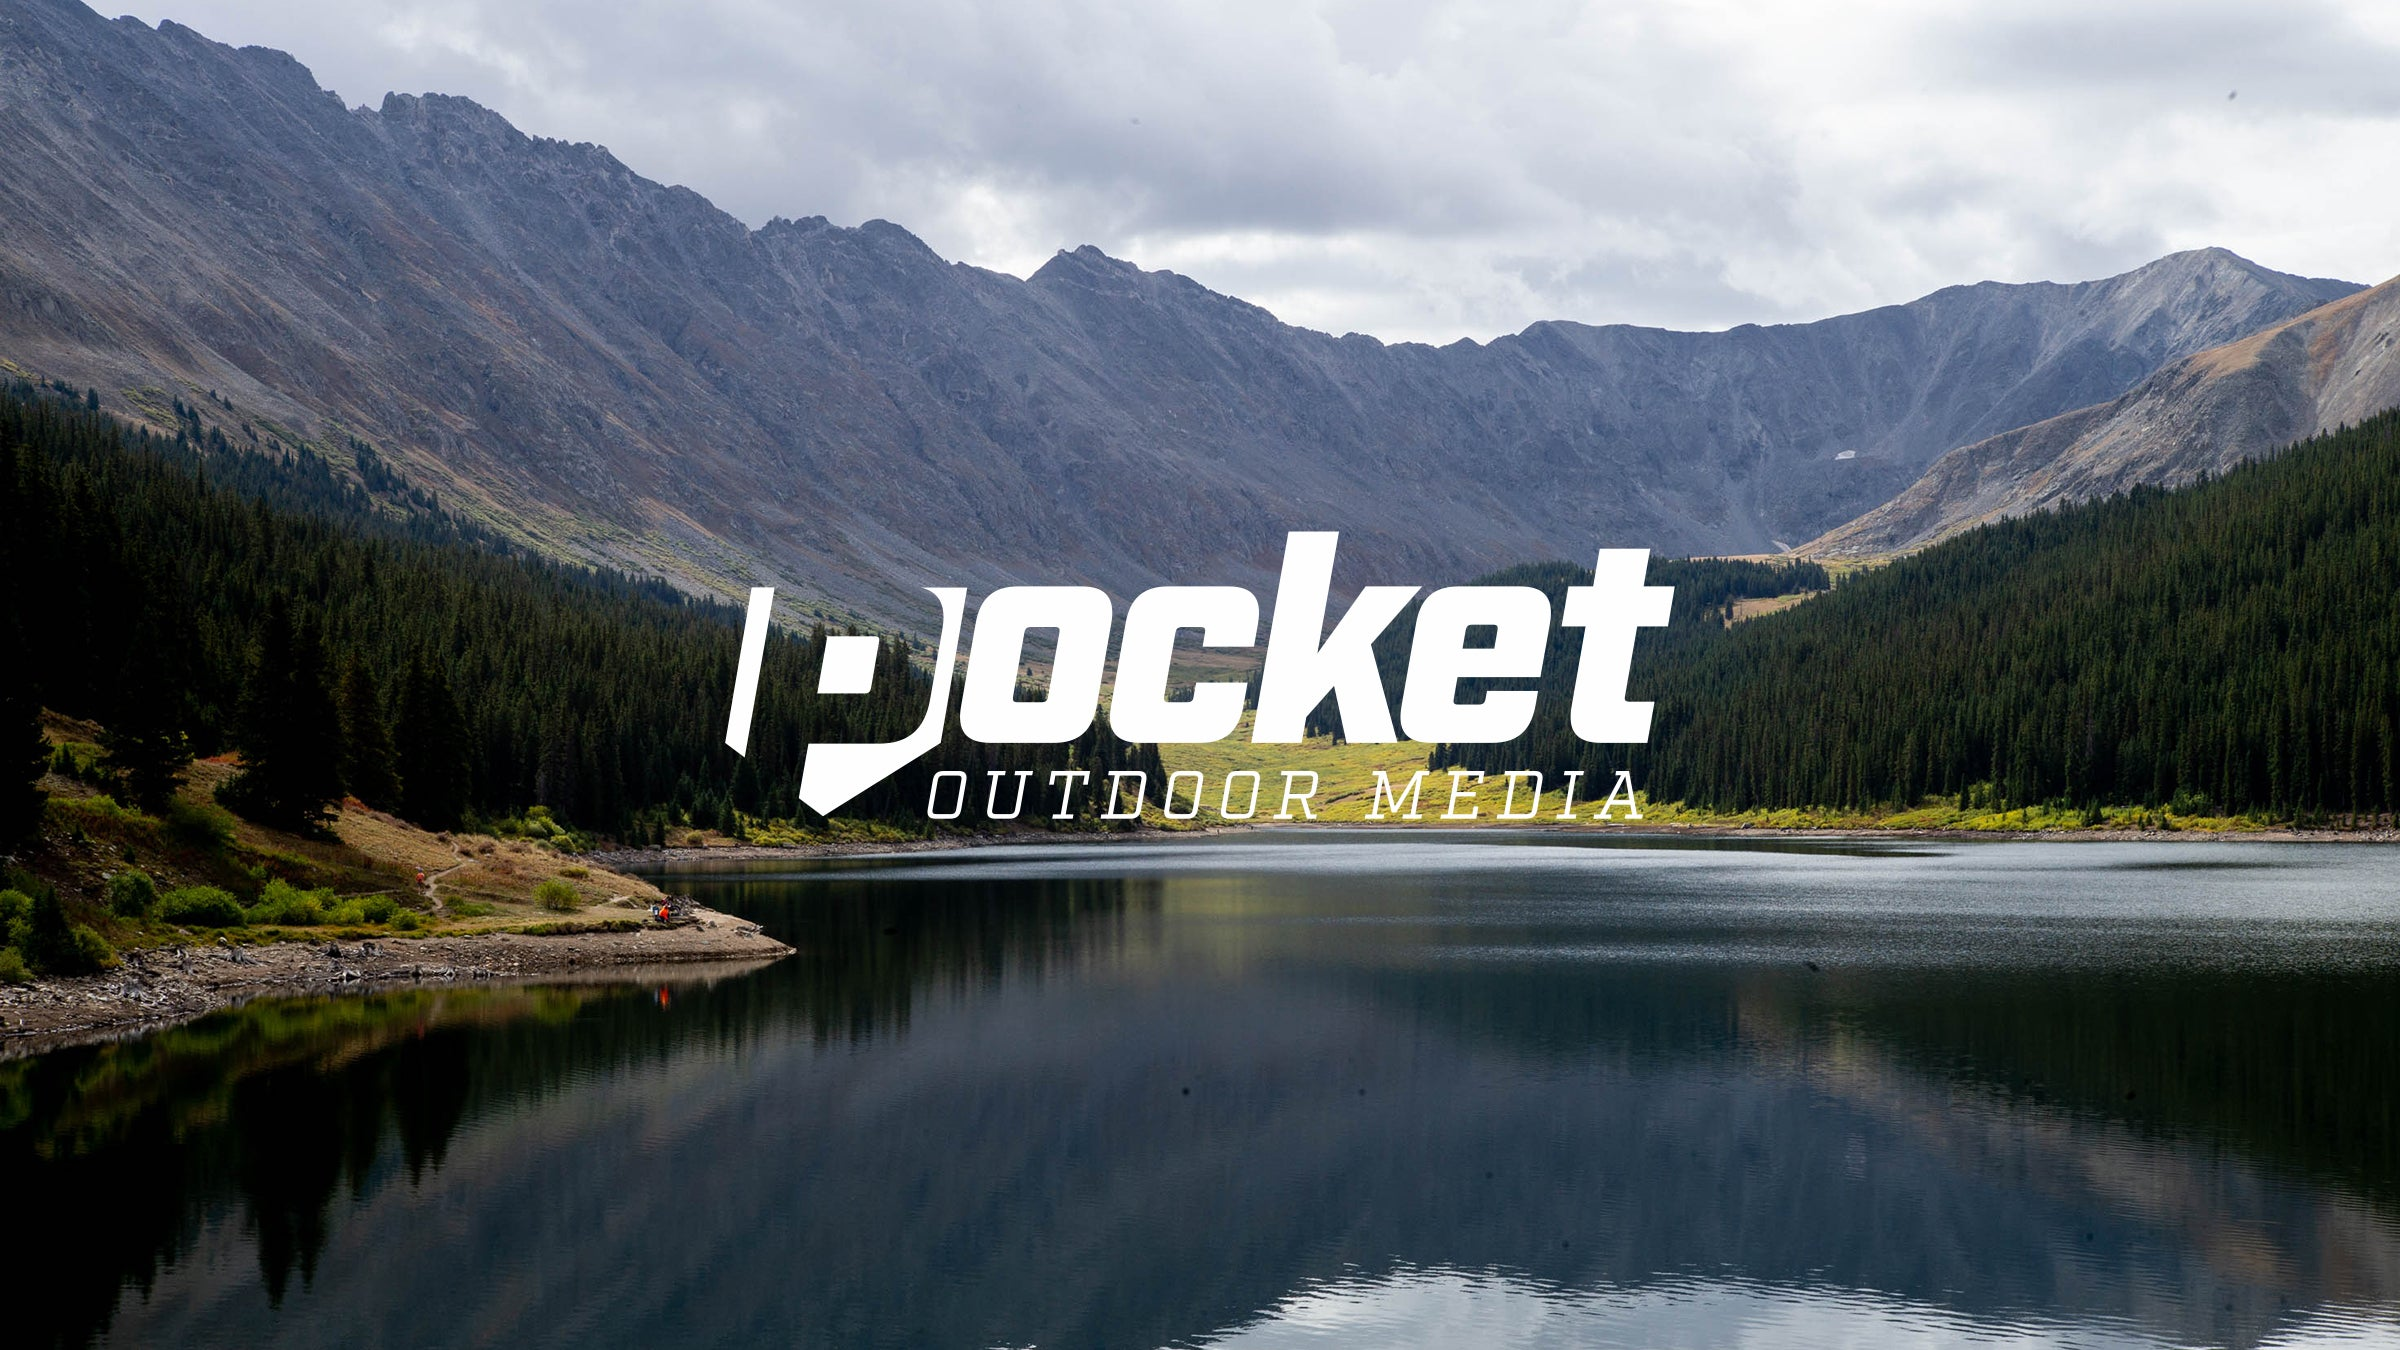 Pocket Outdoor Media Acquires Three Divisions From Active Interest Media And Completes Its Series A Financing – Triathlete